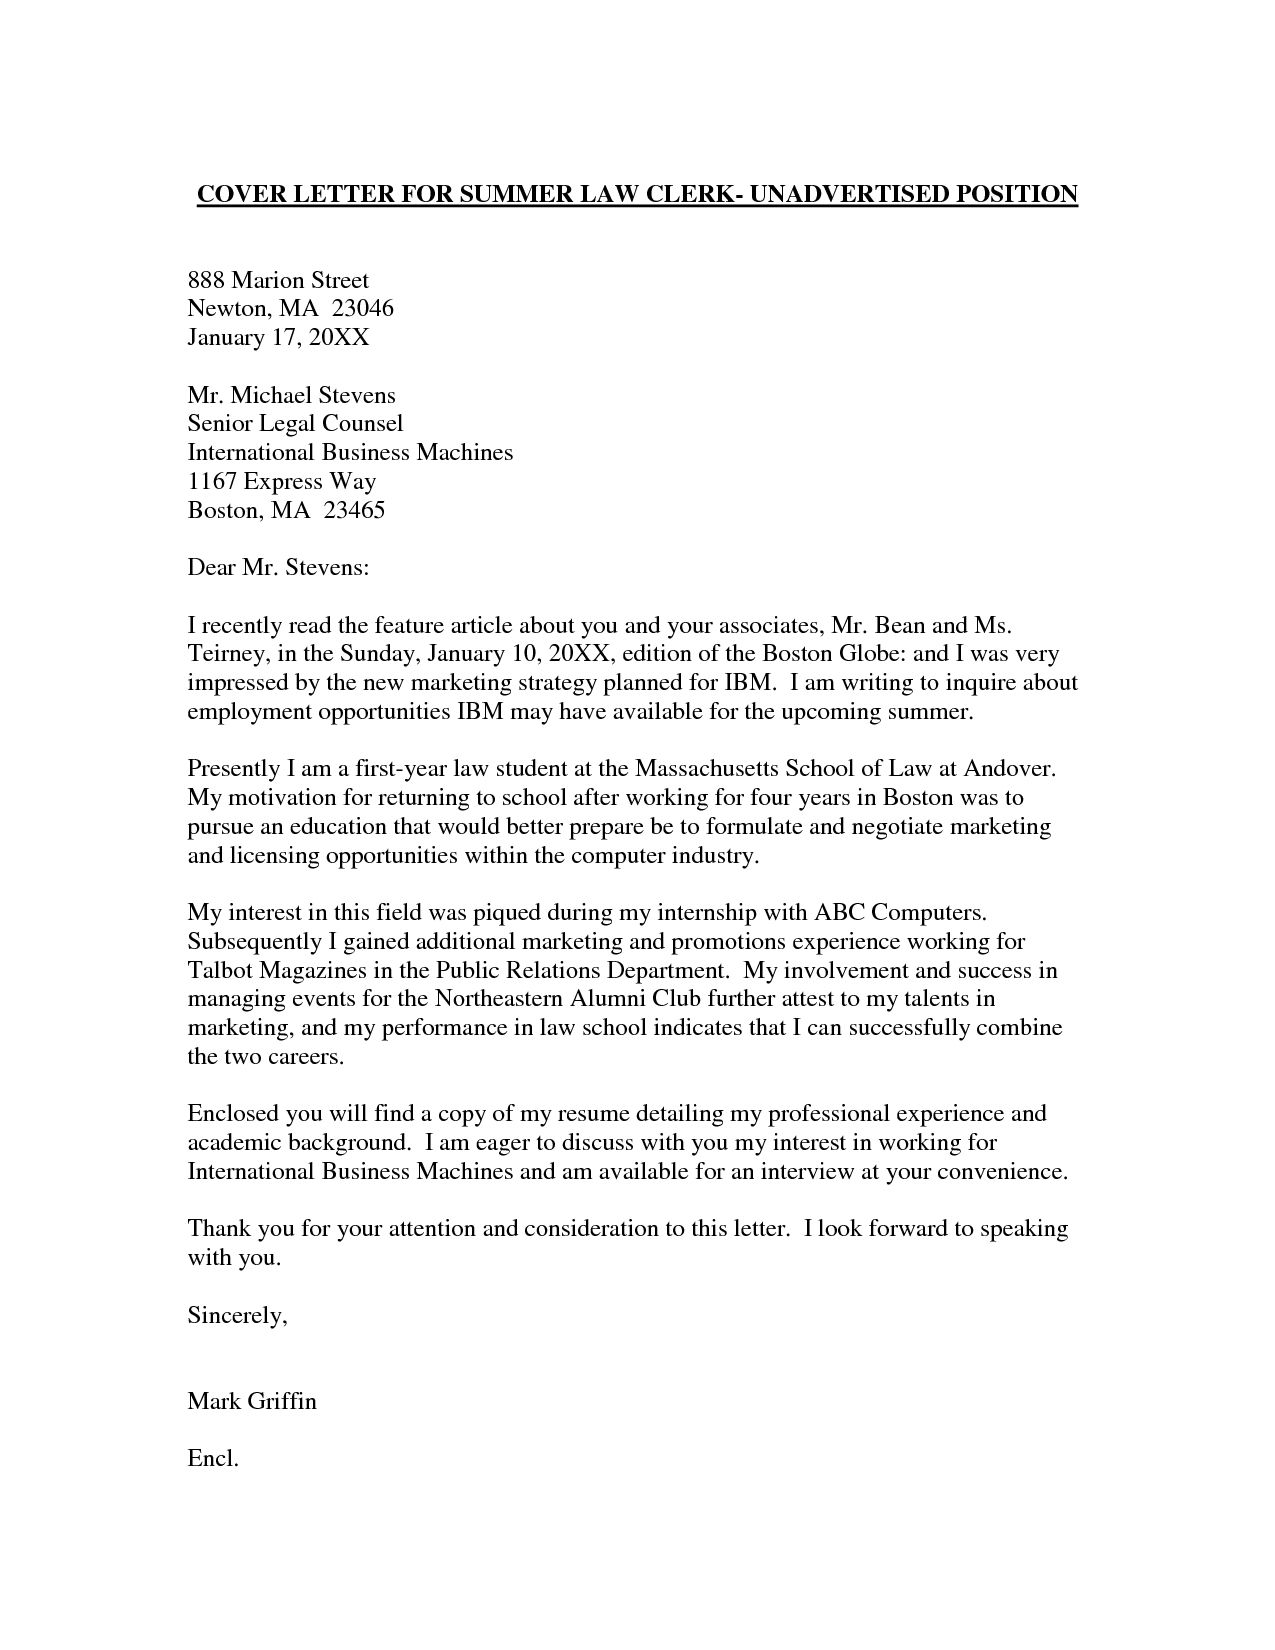 Cover Letter For An Unadvertised Job Example - Job Retro